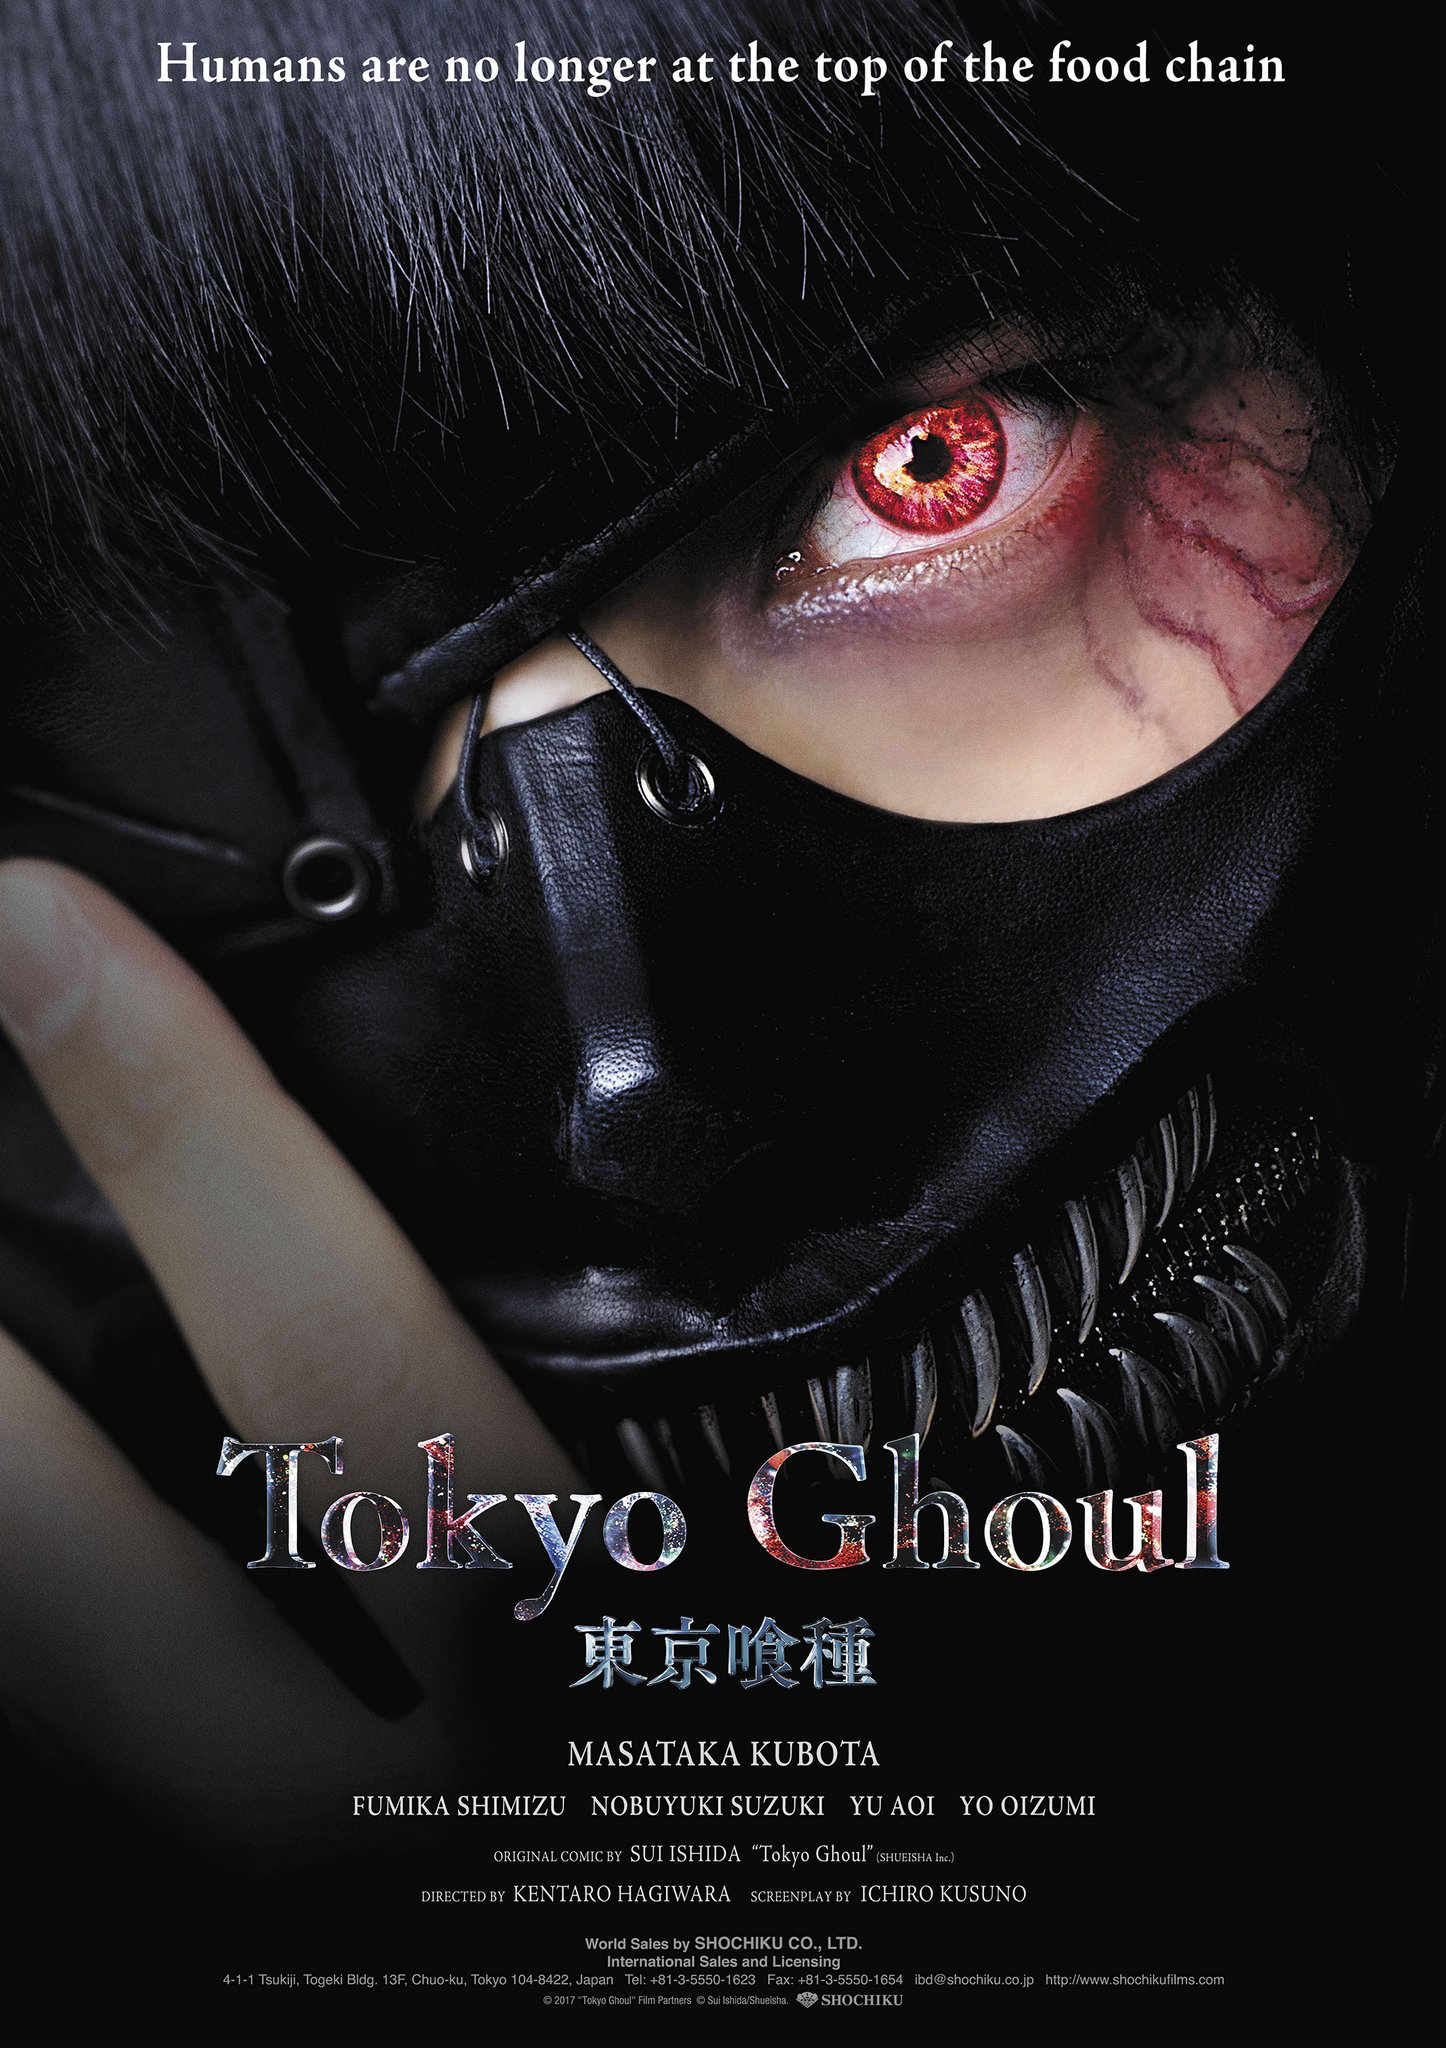 tokyoghoul pretty cool and sweet movie His super cute because his torn between two worlds Ghouls are like wolverines that eats humans Interesting